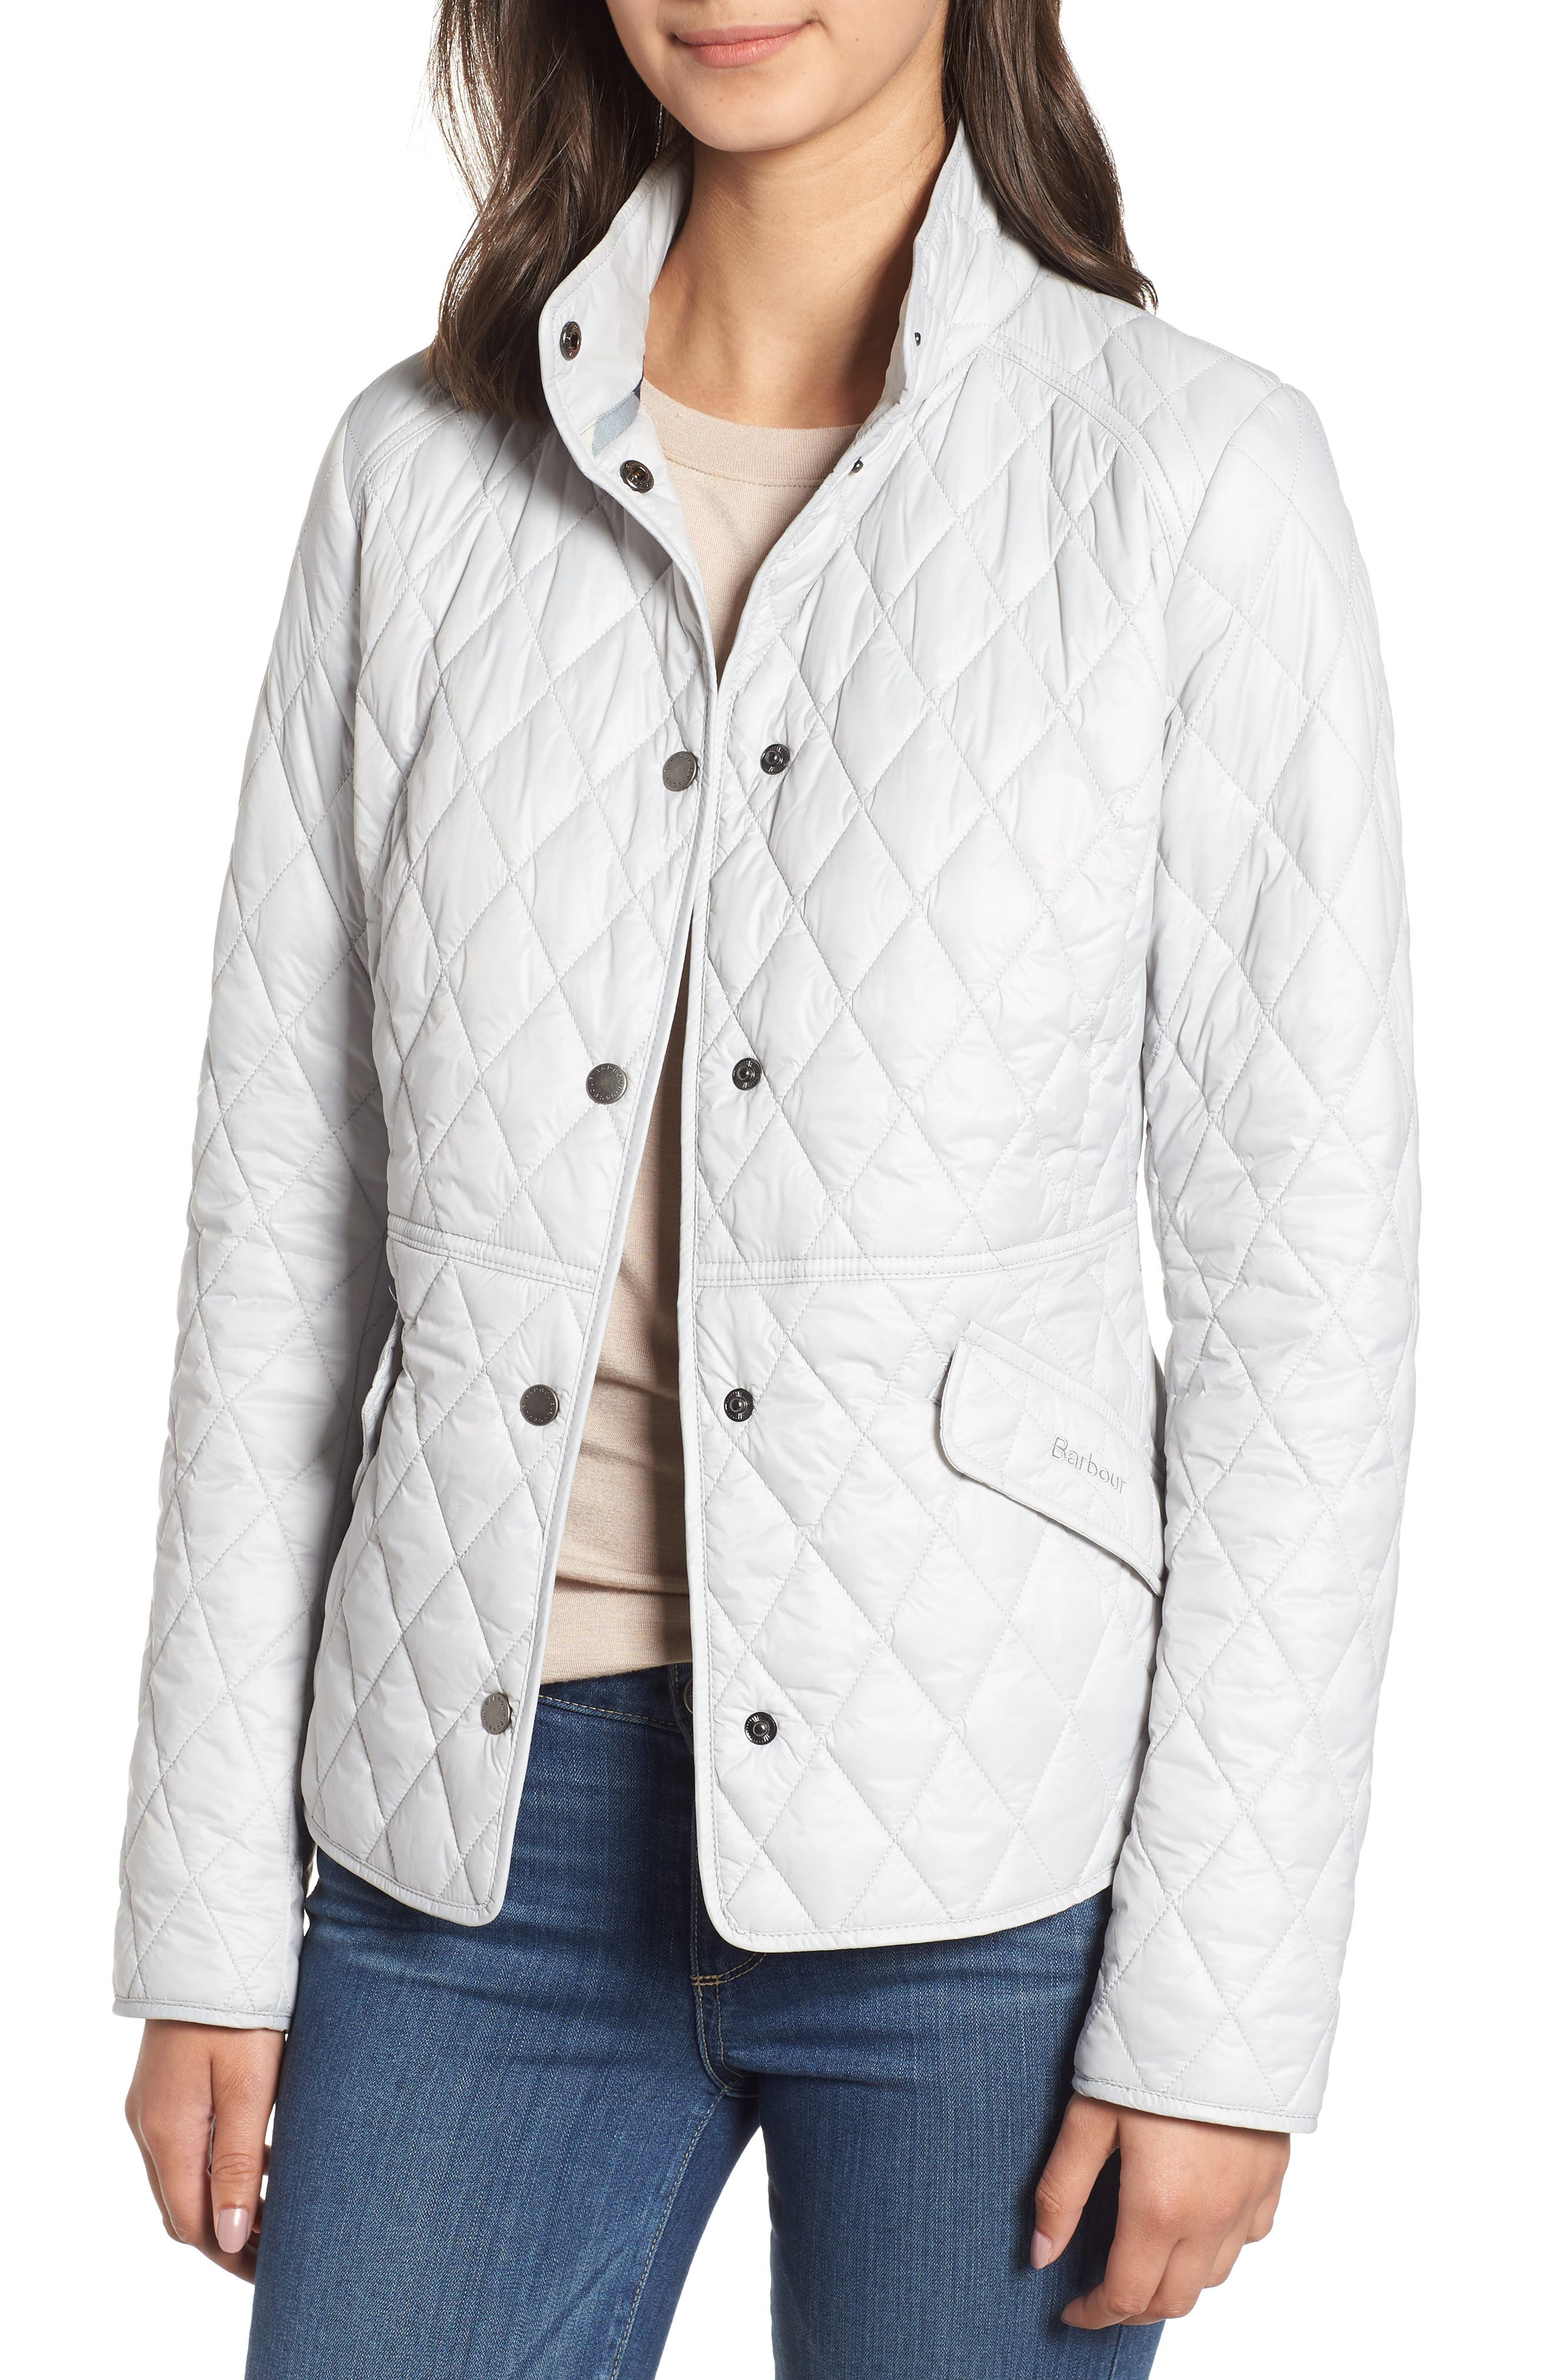 Barbour Annis Quilted Jacket, US / 8 UK - White